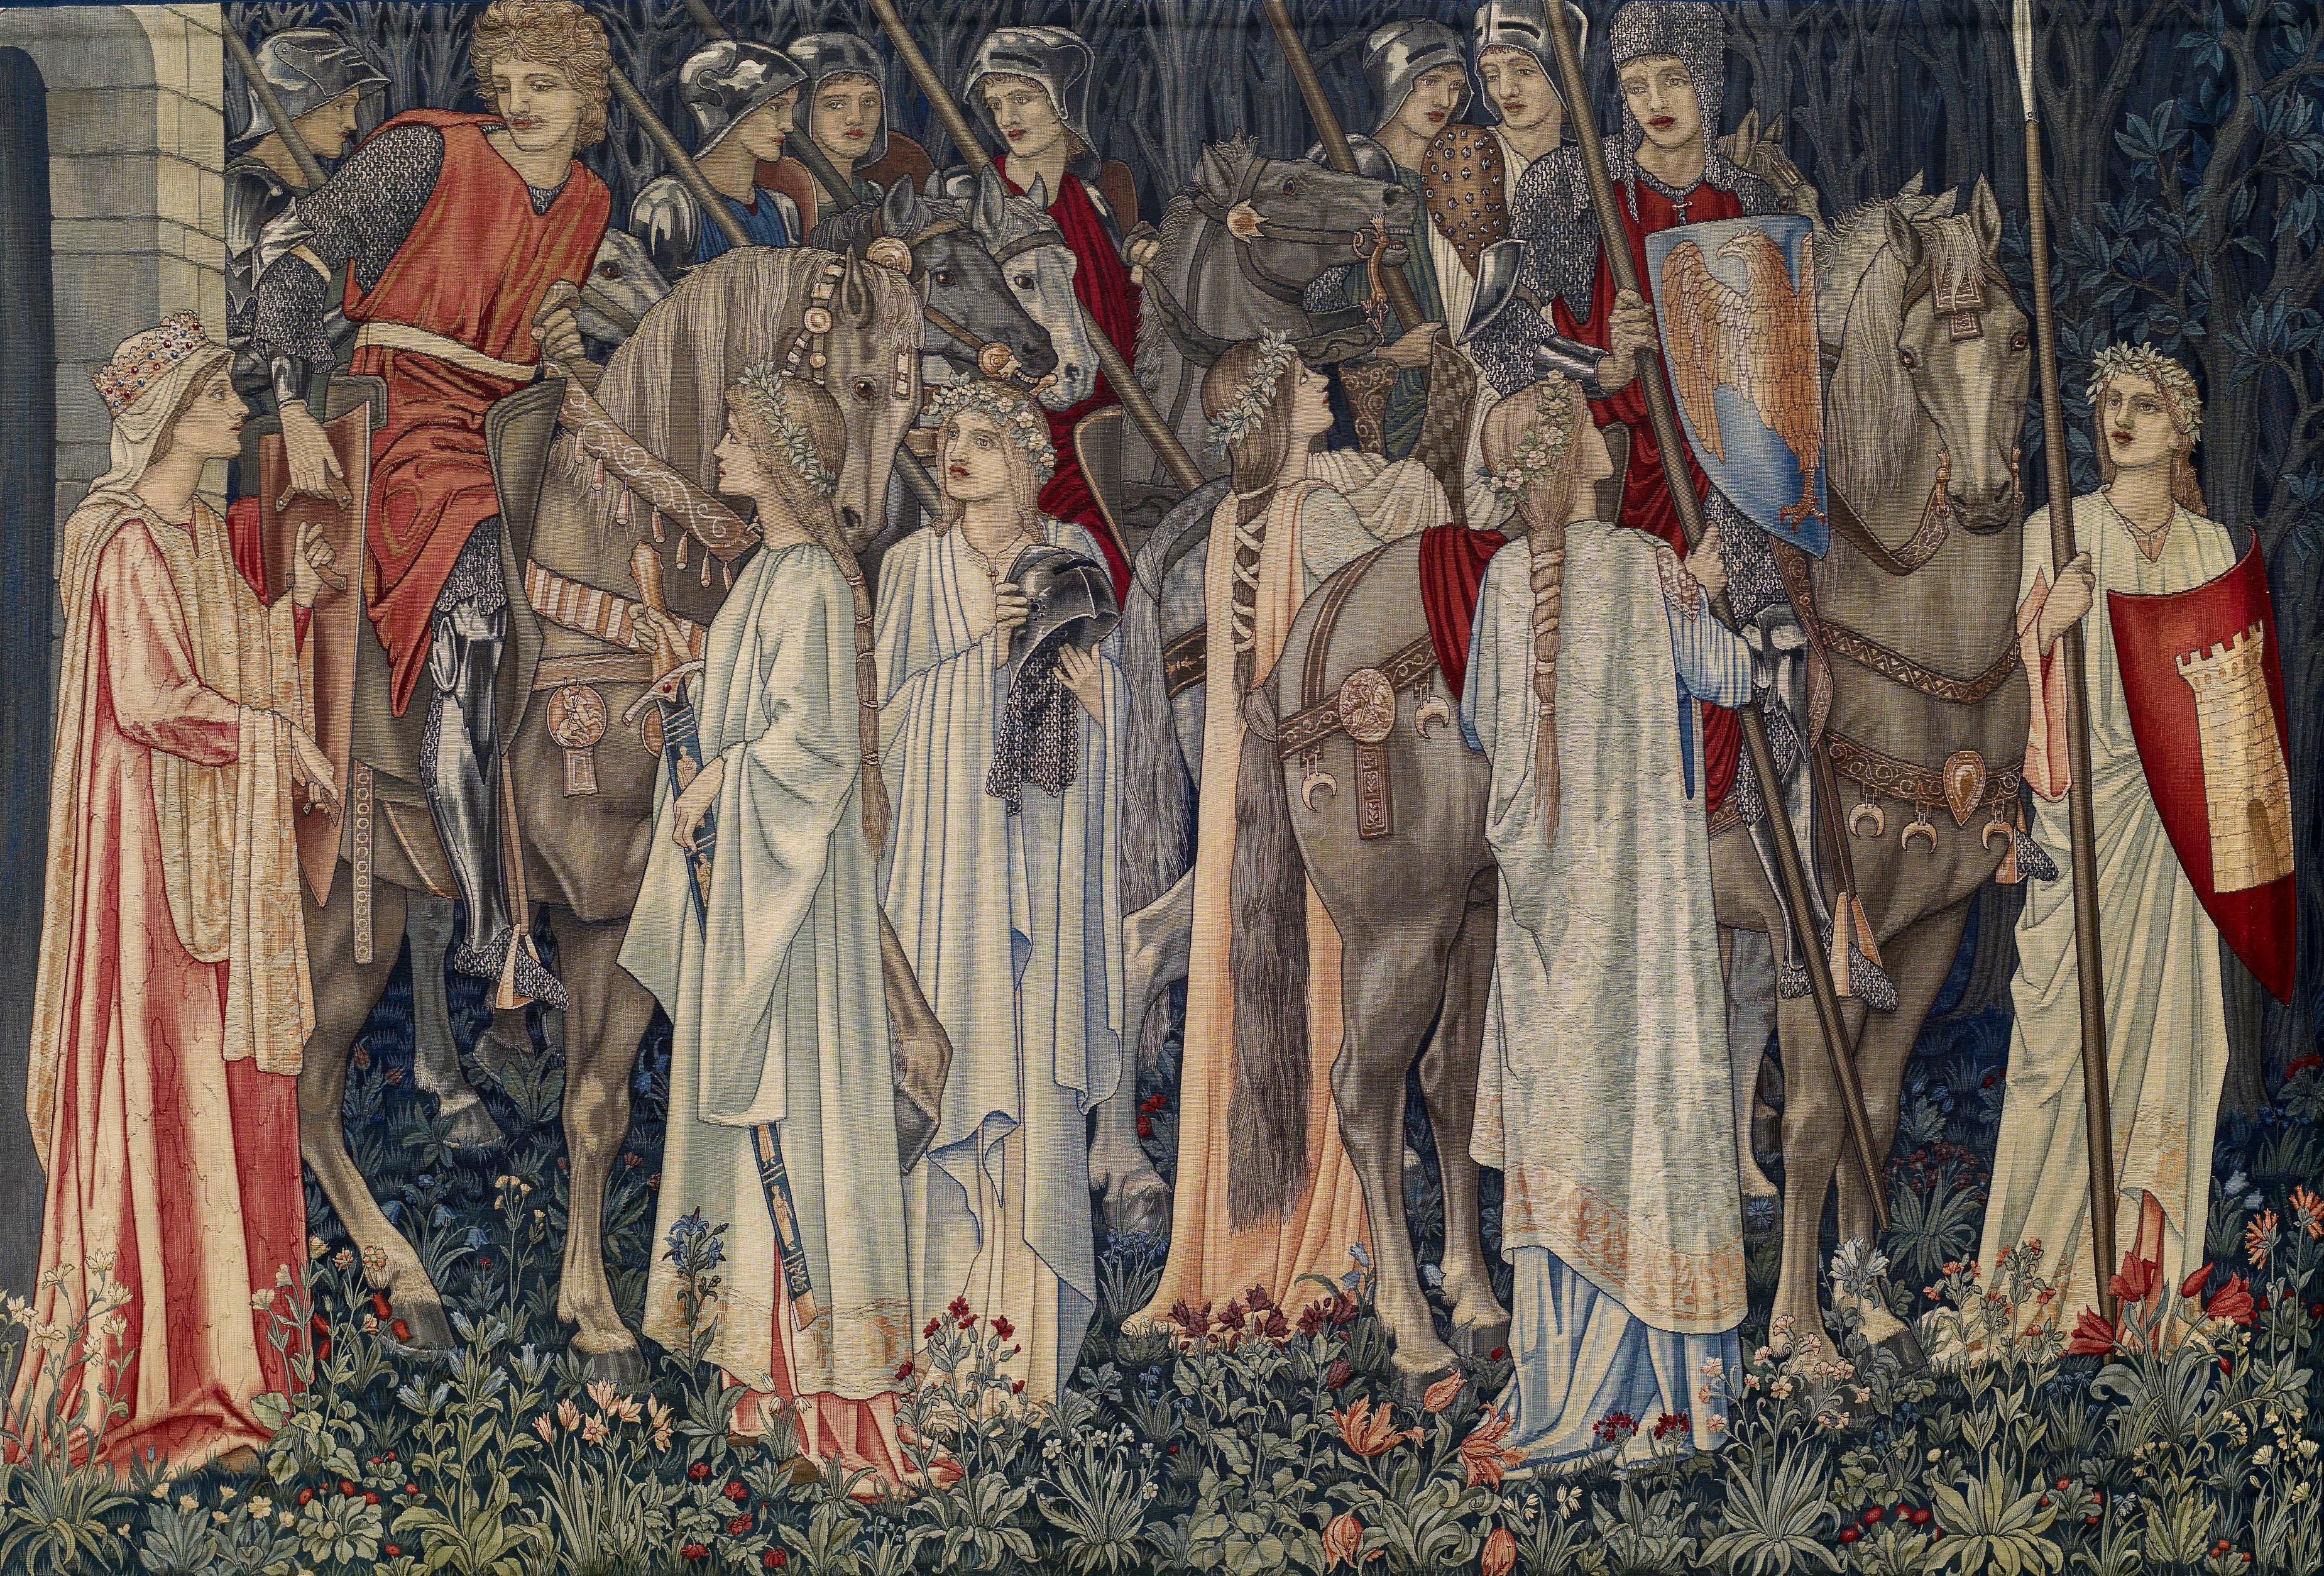 Quest for the Holy Grail Tapestries - Panel 2 - The Arming and Departure of the Knights, 1895-96